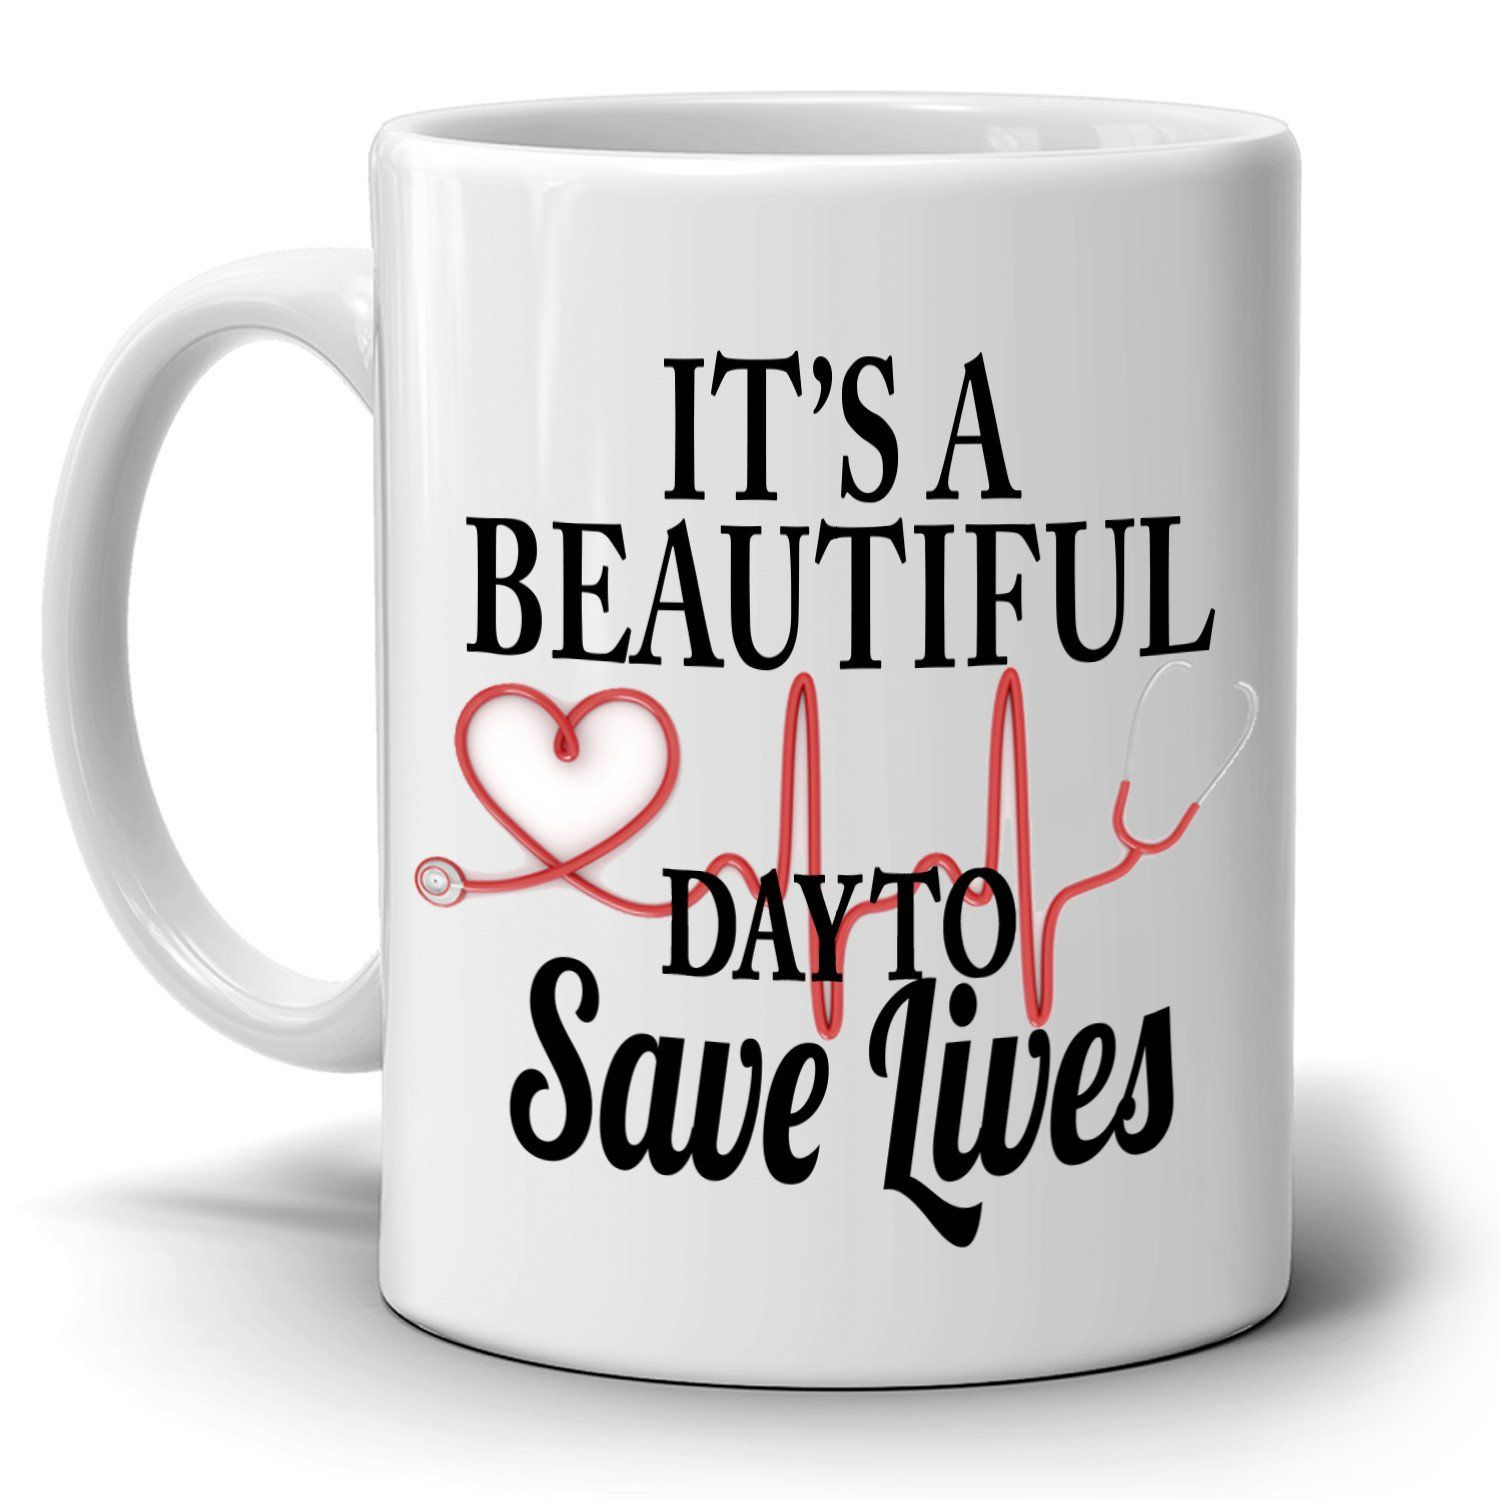 Inspirational Doctors And Nurse Gifts Coffee Mug It S A Beautiful Day To Save Lives Printed On Both Sides Mugs Nurse Mugs Nurse Gifts